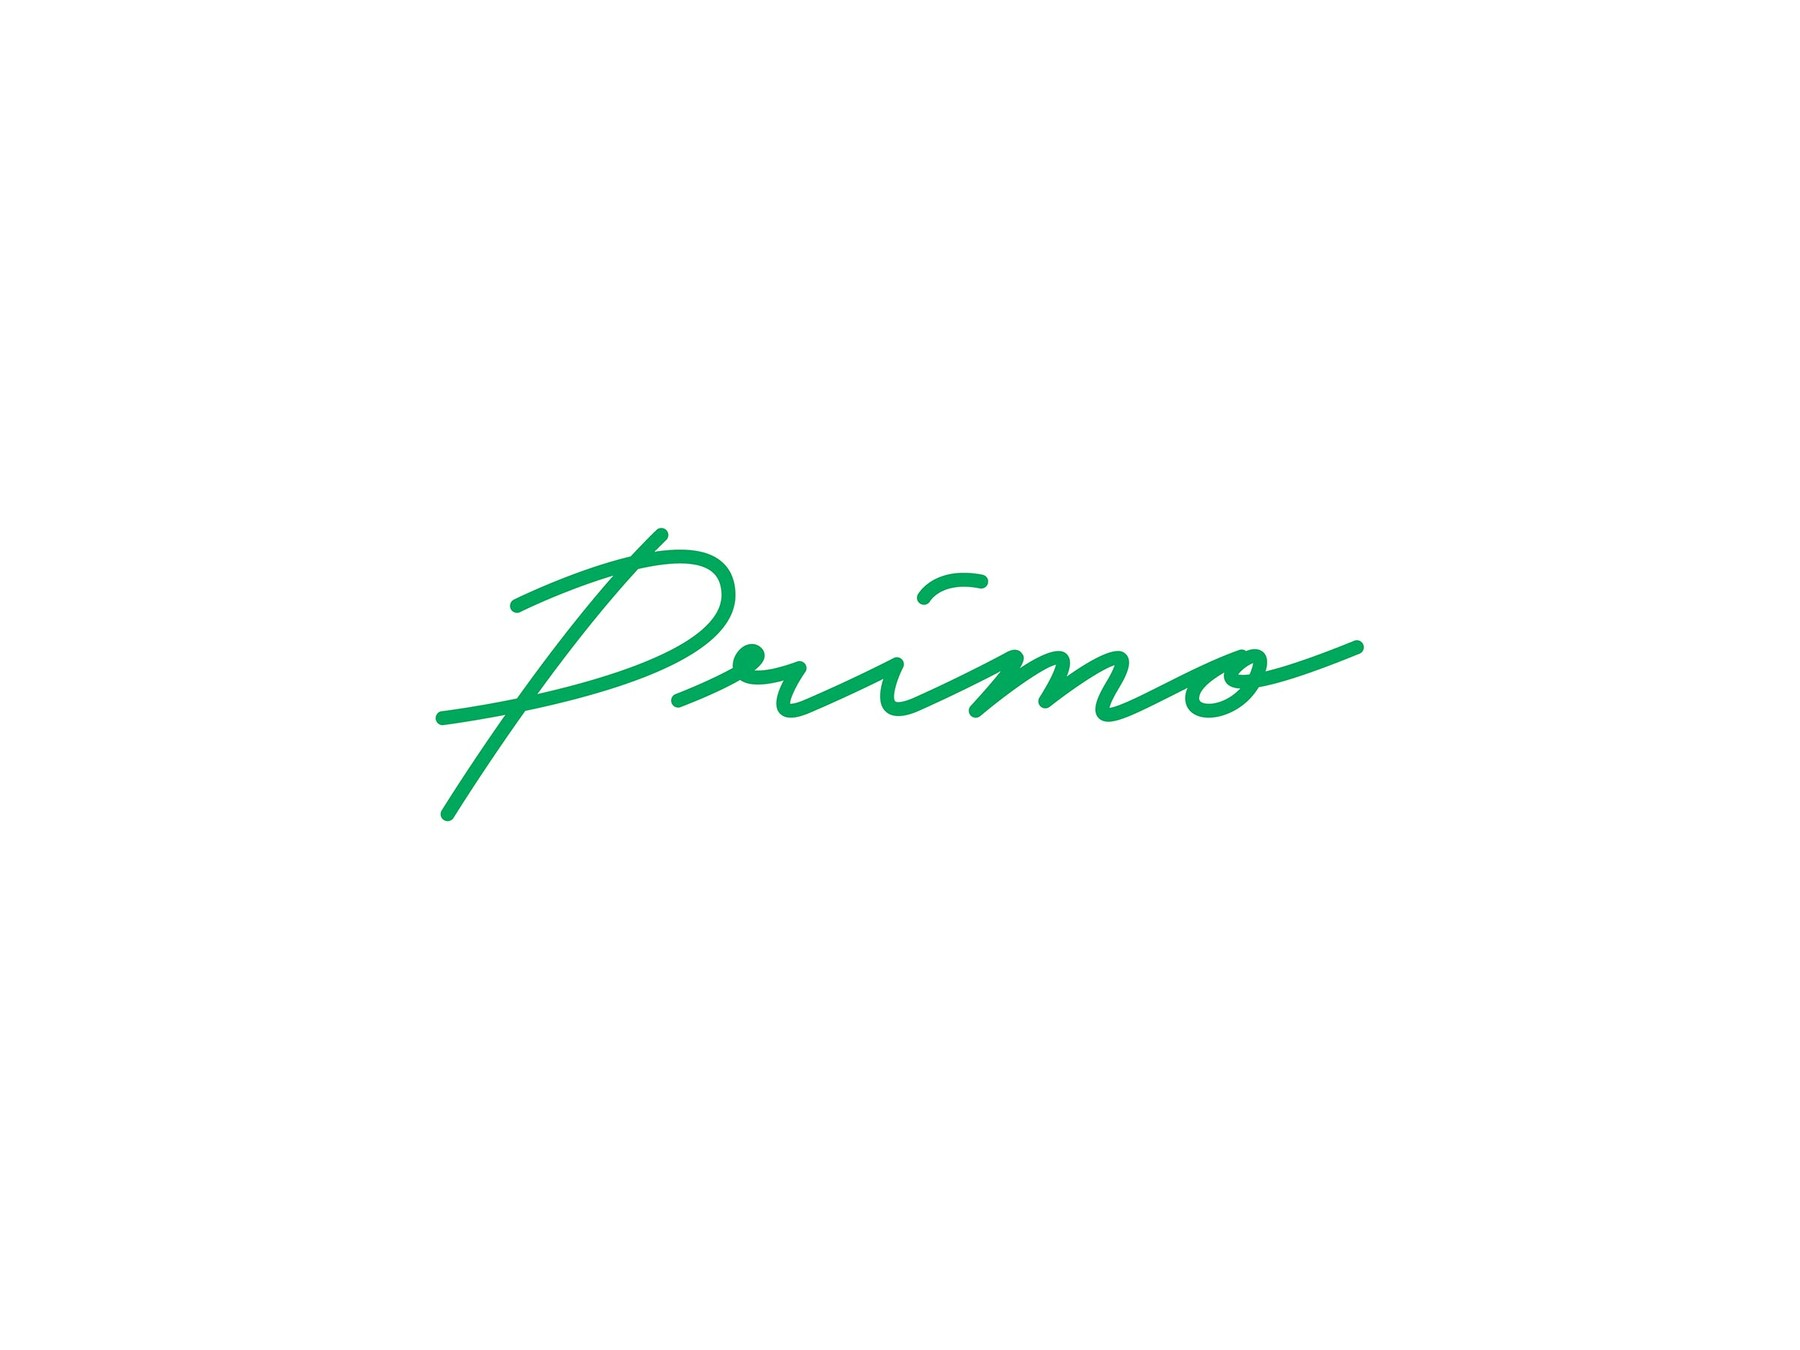 never-now-16-primo-1.jpg